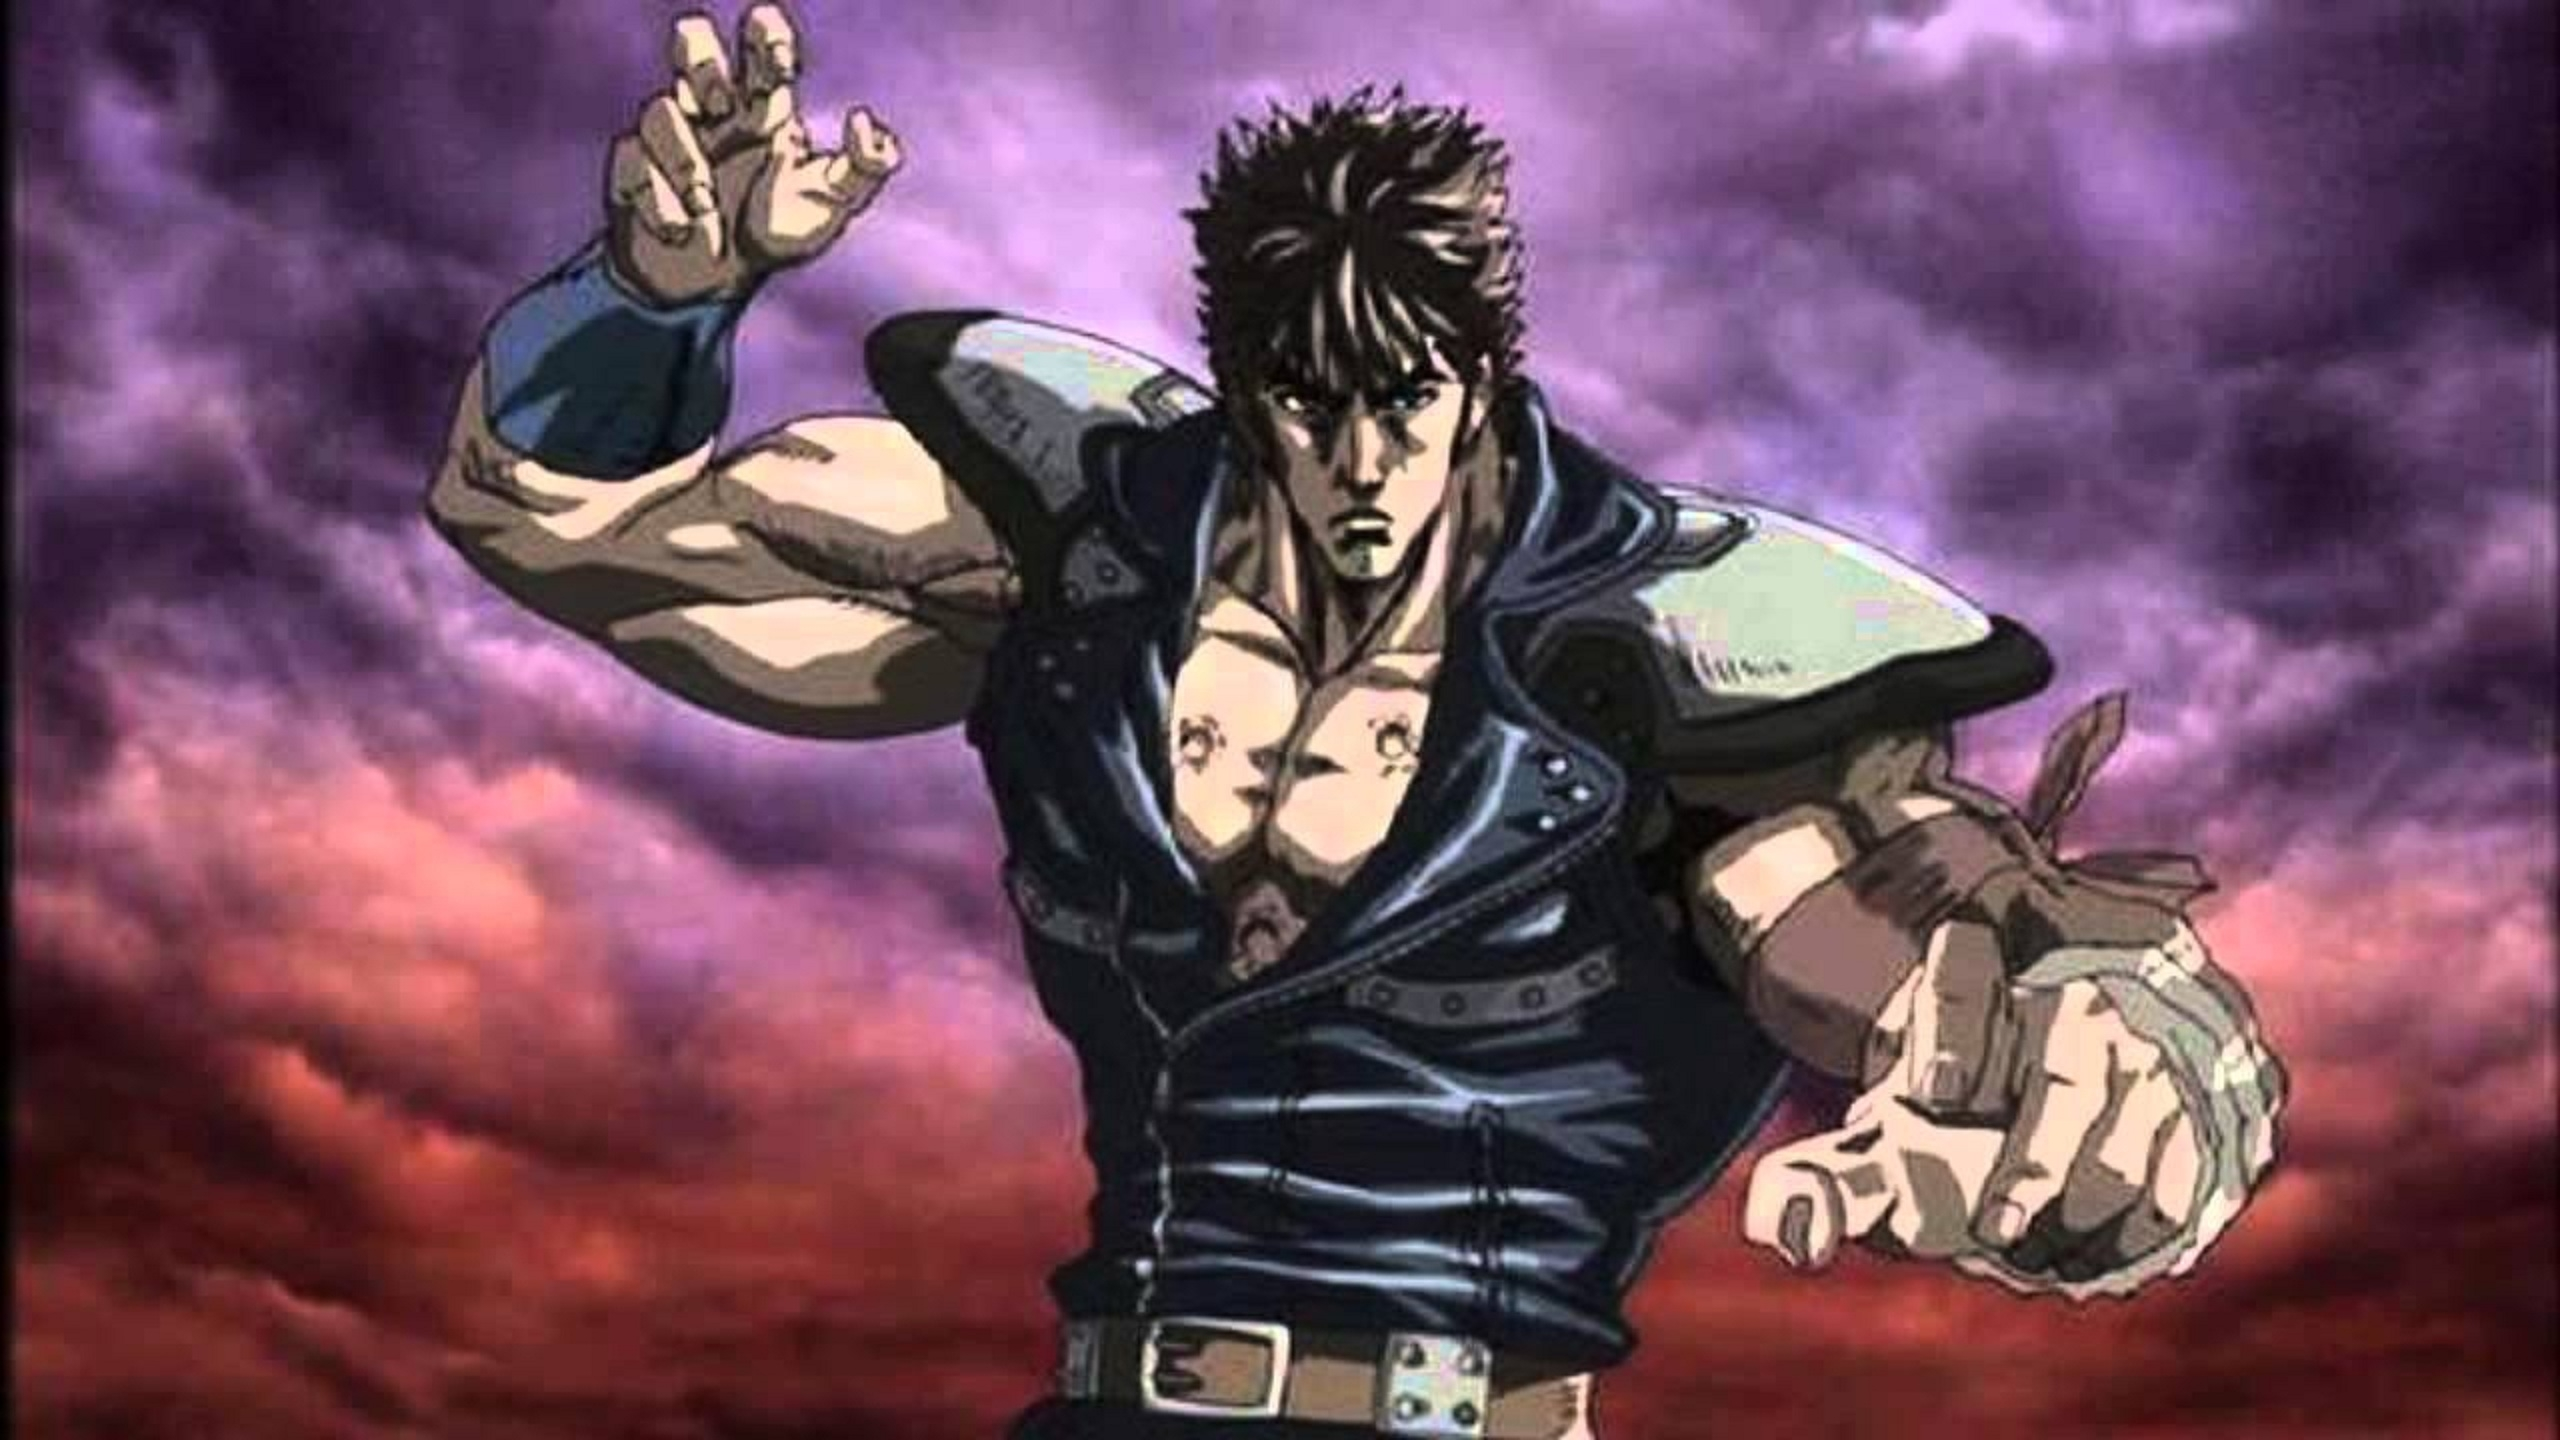 Fist Of The North Star Wallpaper Wallpapers Anime Hokuto No